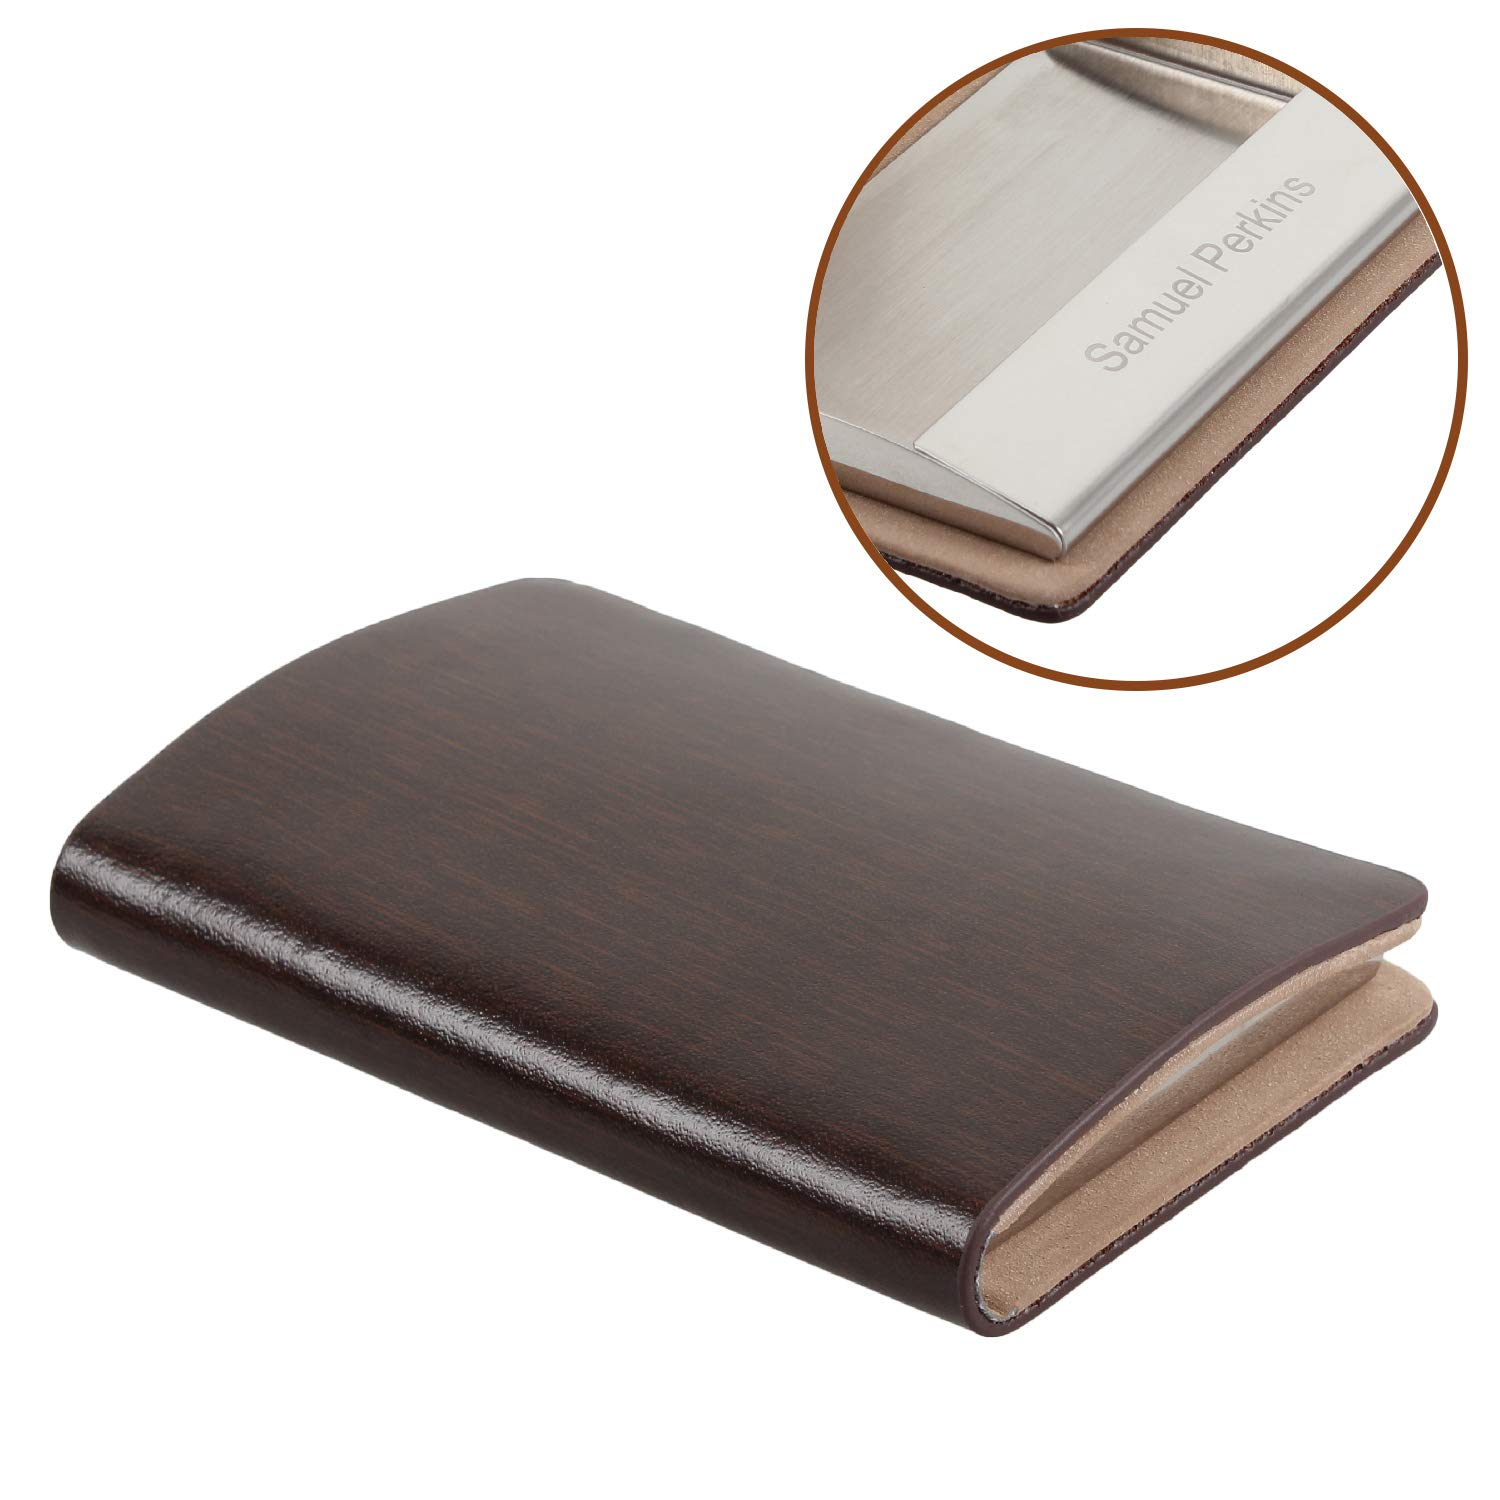 SOLEADER Personalized Leather Business Card Holder for Men, Credit Card Case HH-STUDIO CUSTOM